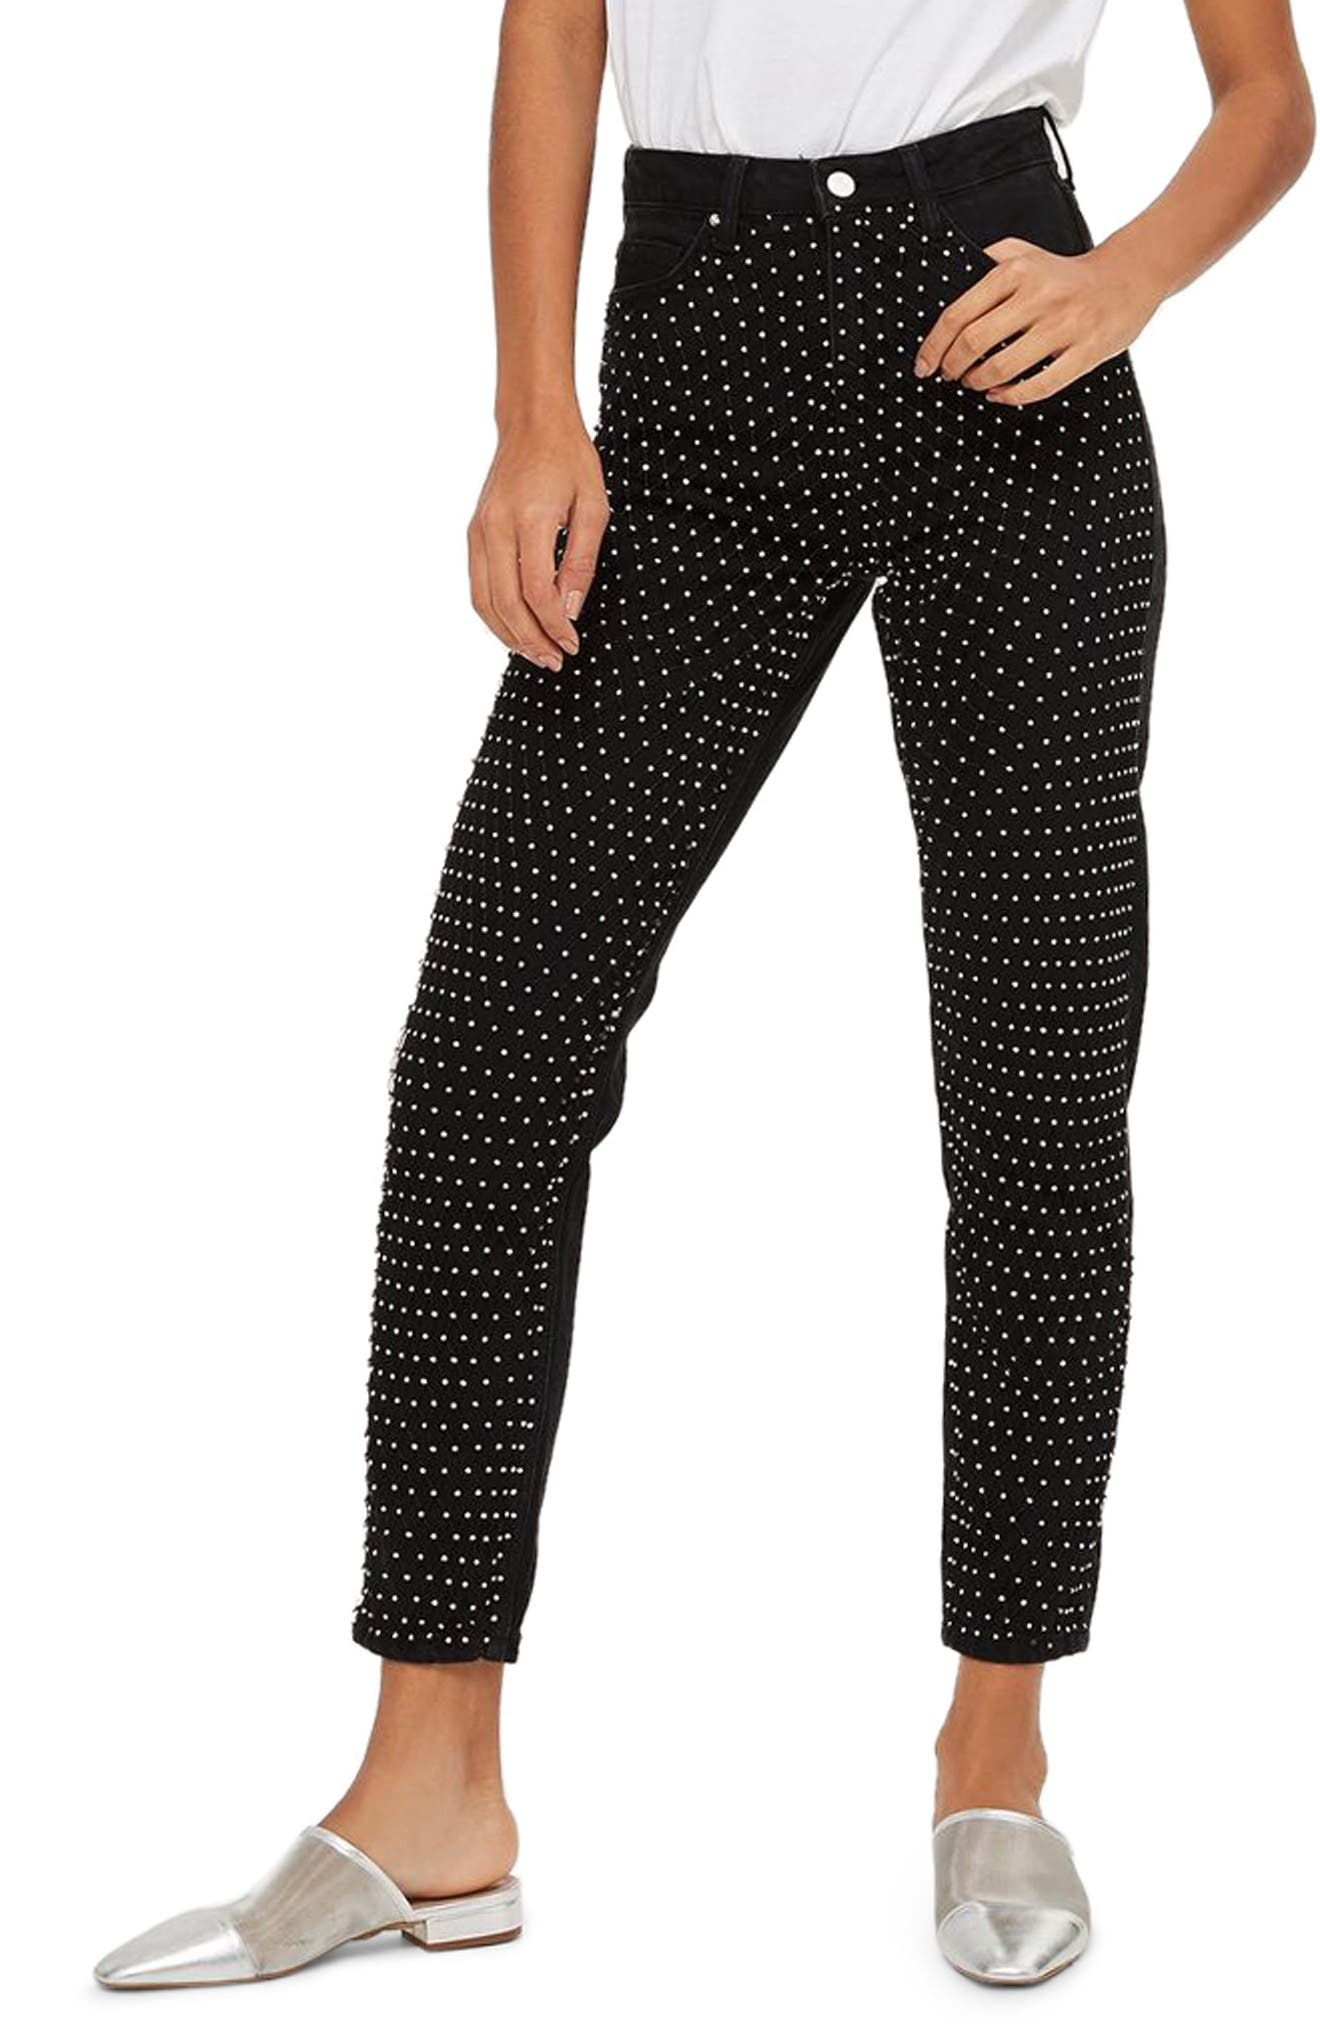 Limited Edition Diamante Fishnet Mom Jeans,                             Main thumbnail 1, color,                             001